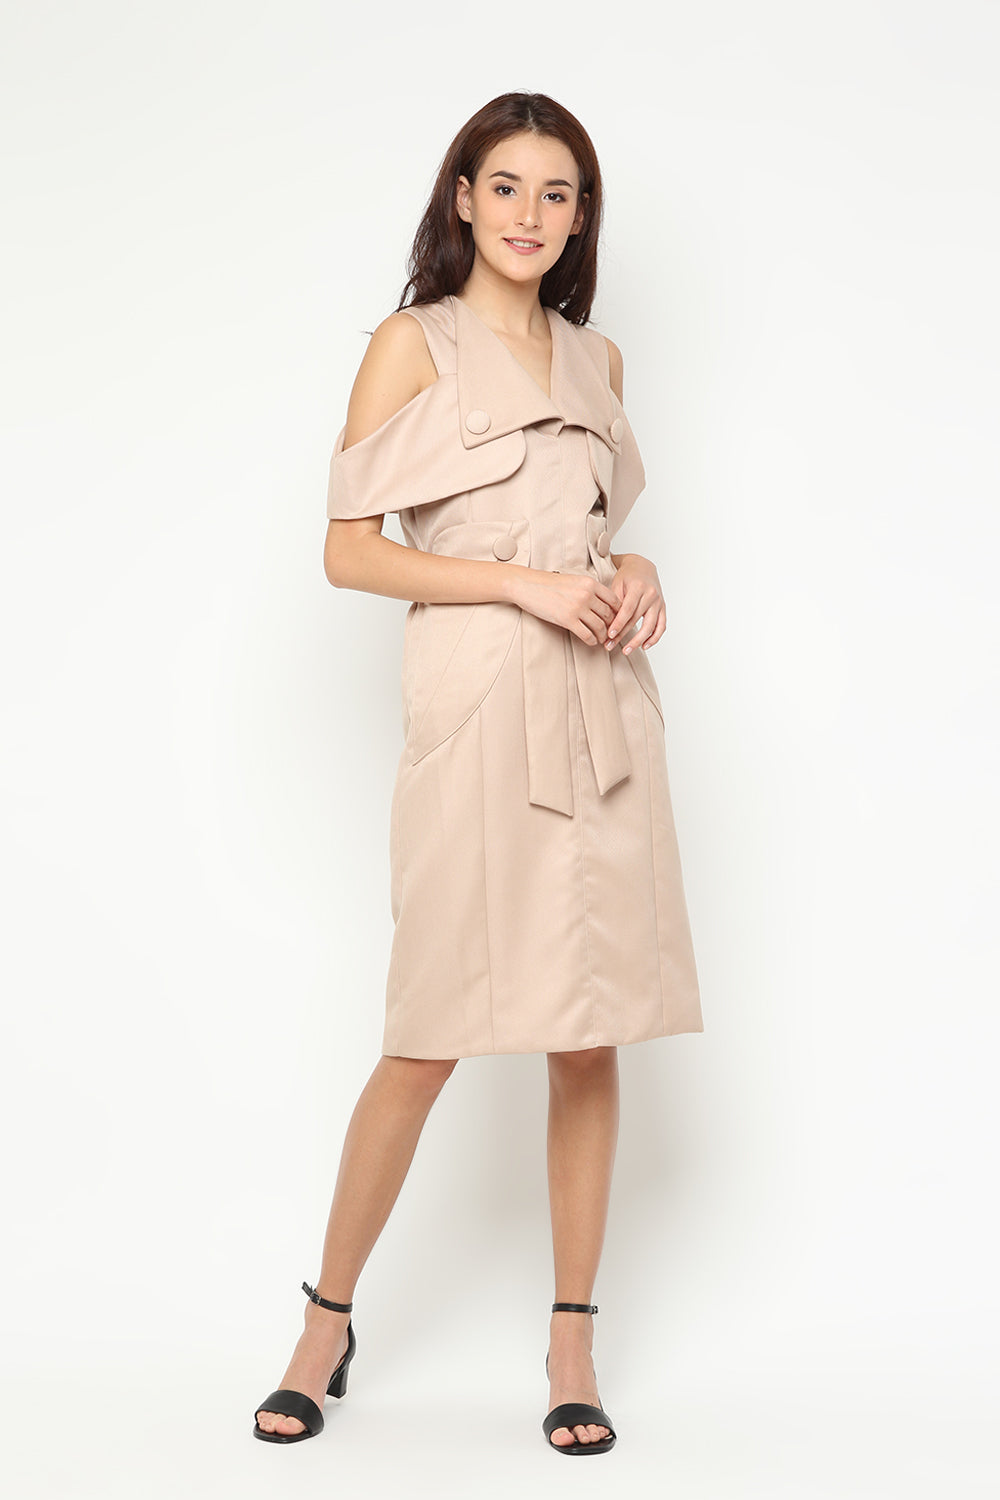 Dress Safari Nude